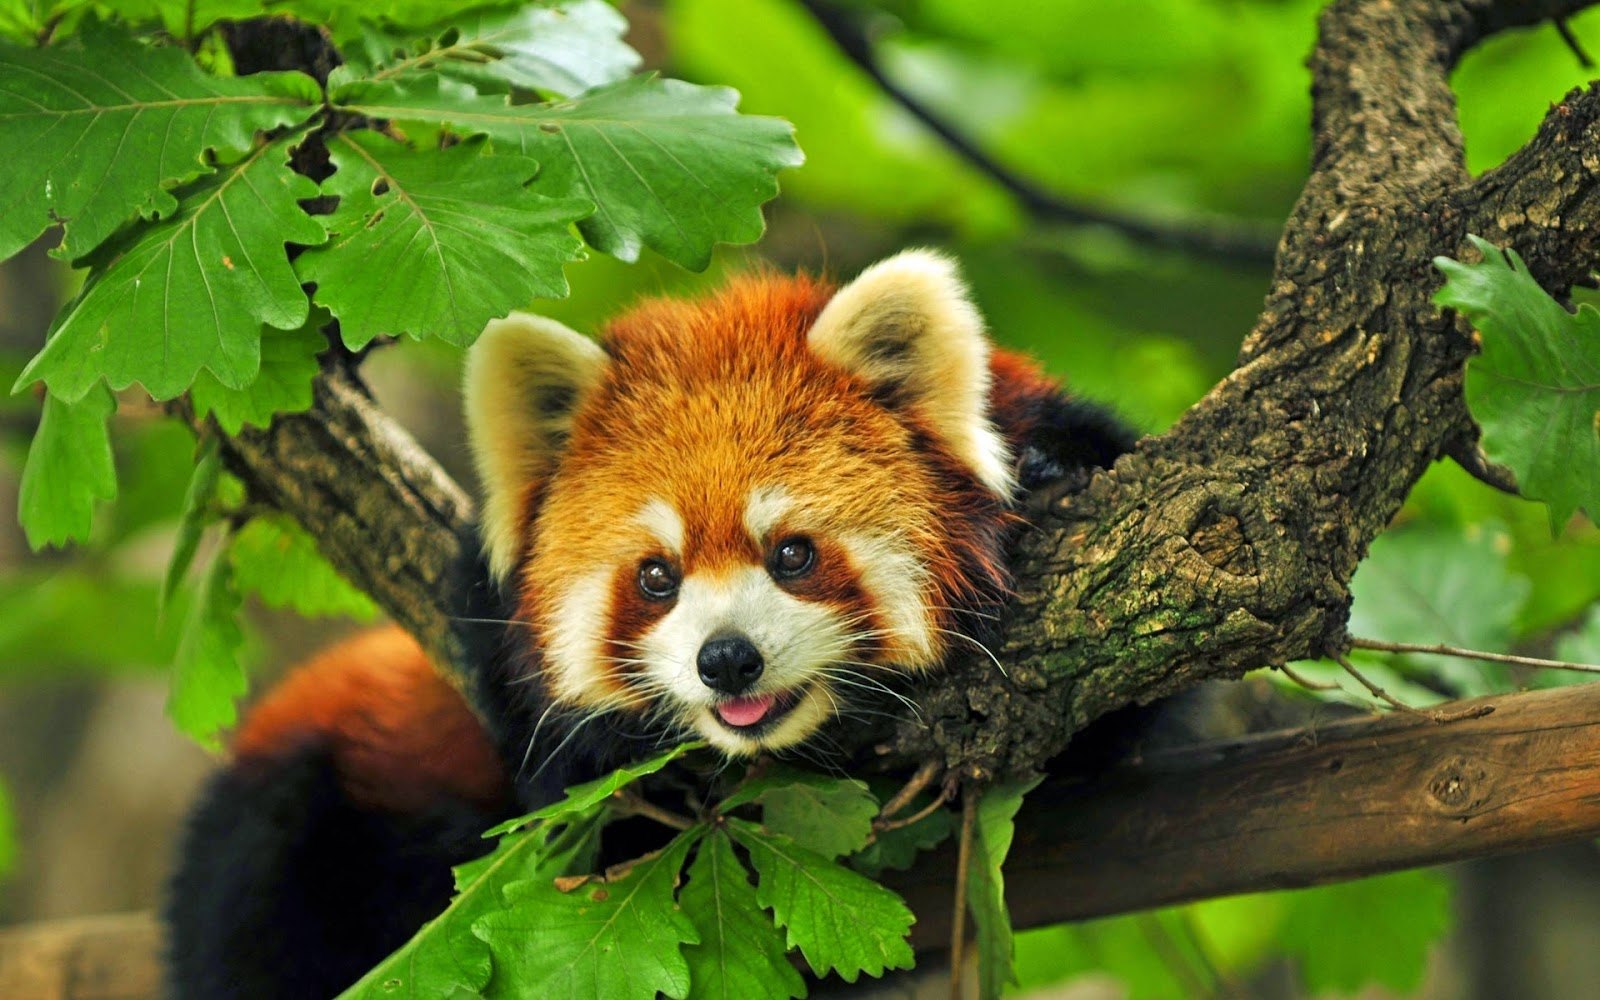 40 Adorable red panda pictures (40 pics), red panda chilling on tree branch